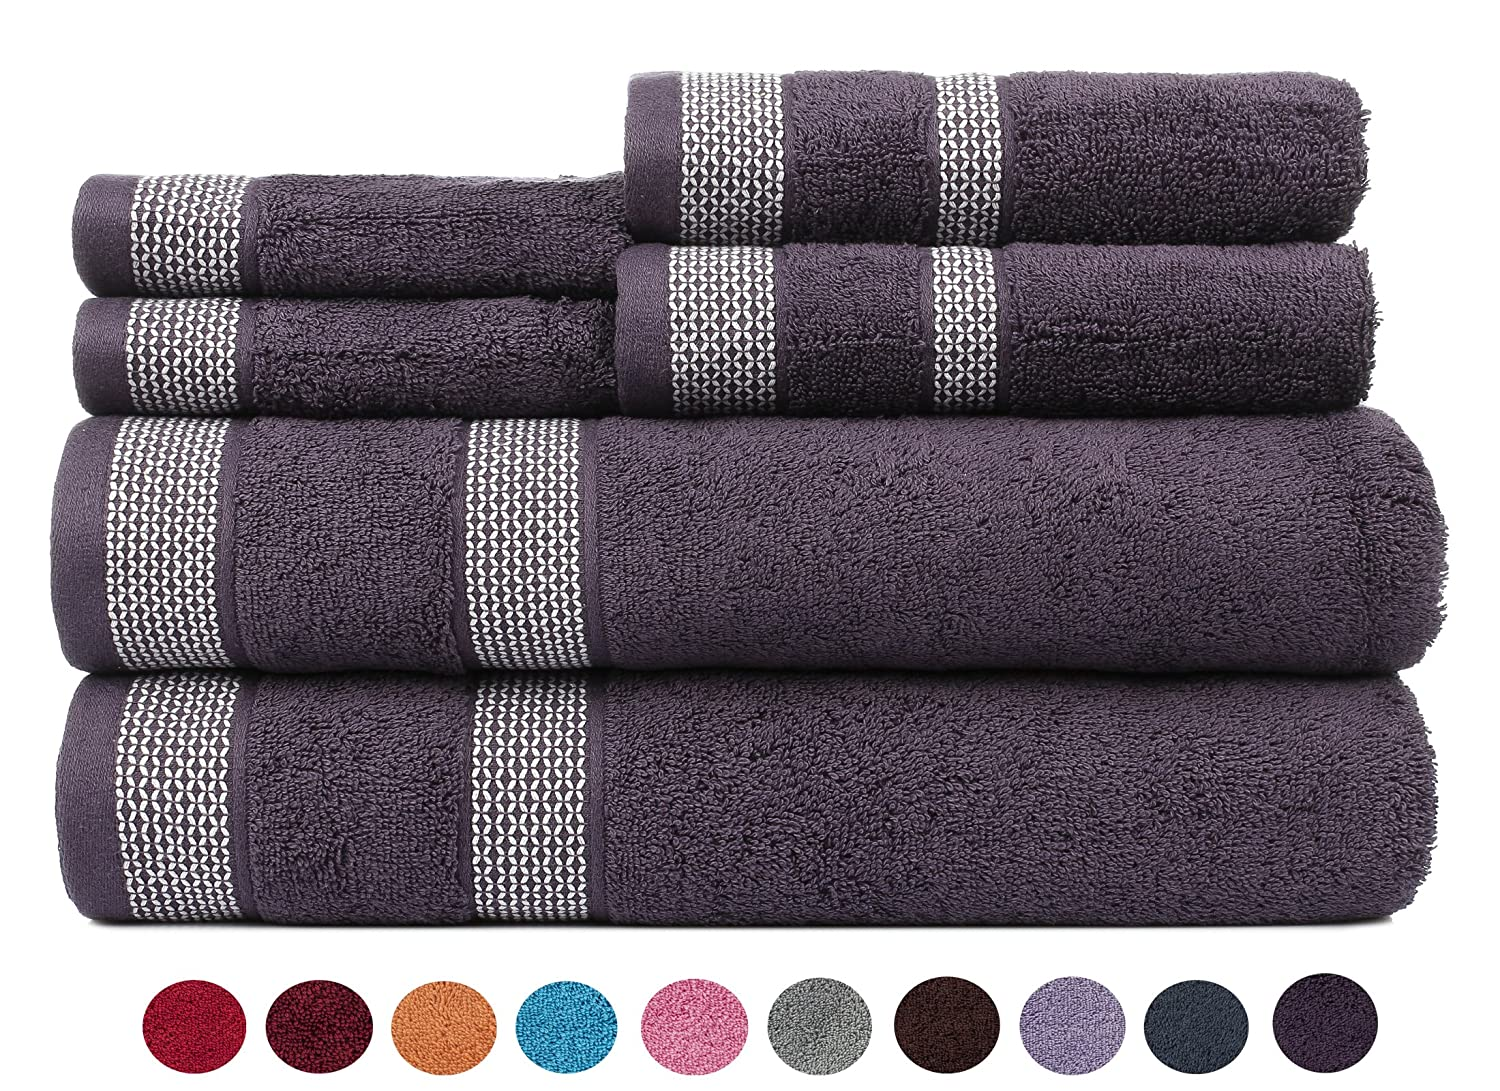 CASA COPENHAGEN Solitaire Cotton 17.70 oz//yd/² Thick 6 Pack Hand Towel Set Italian Plum